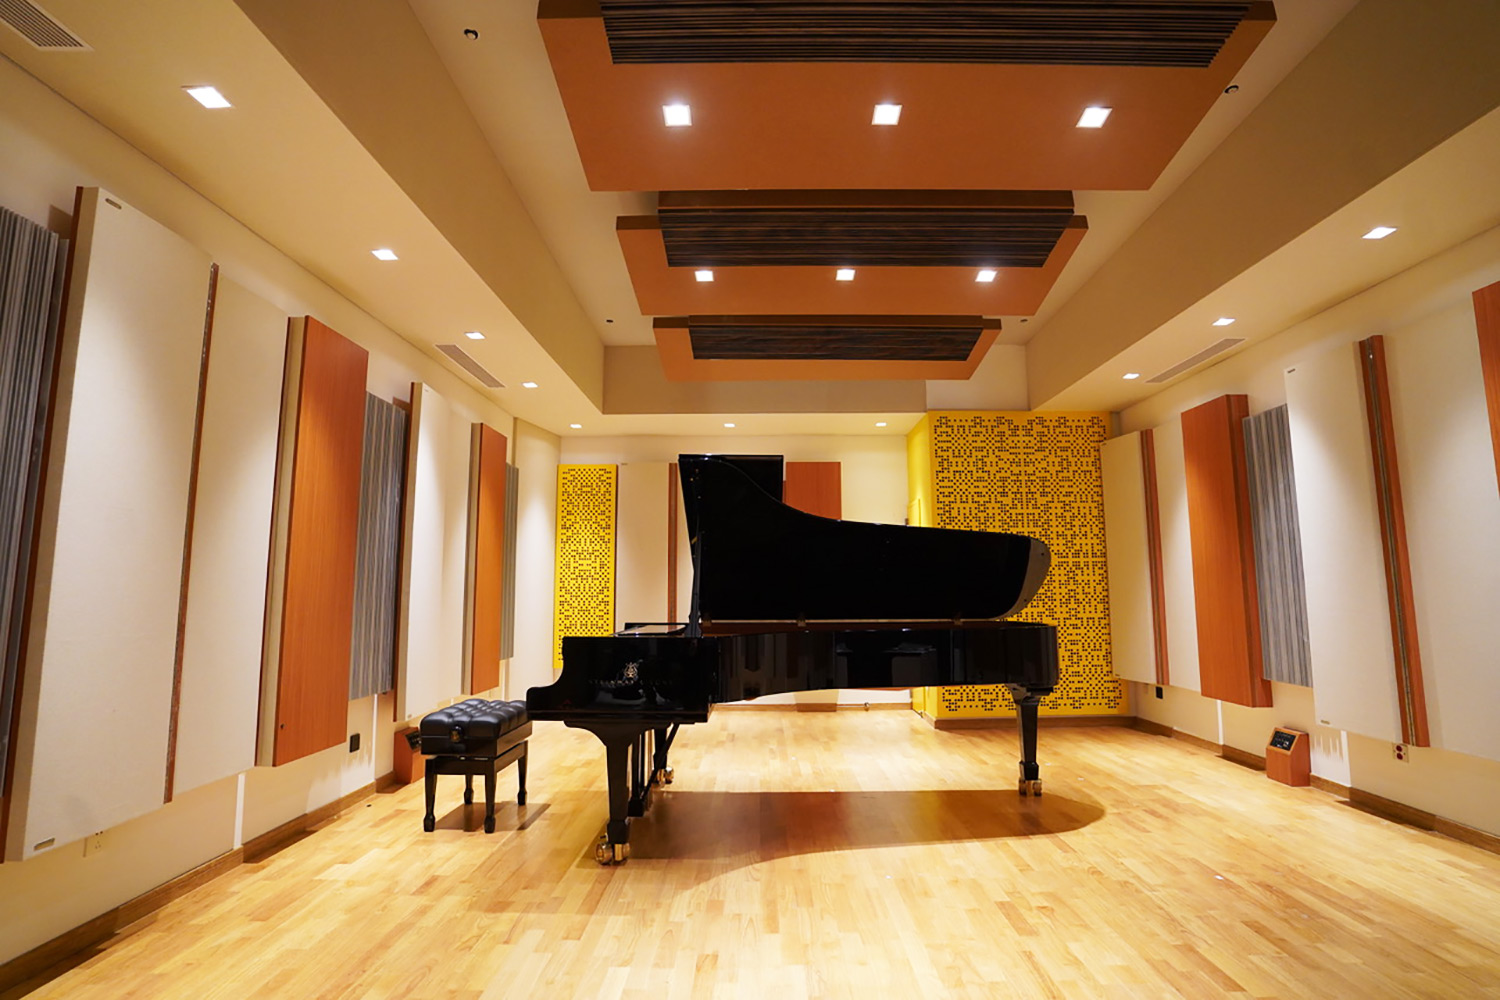 ACE Studios in Guangzhou, China. Designed by WSDG. Live Room wide photo.